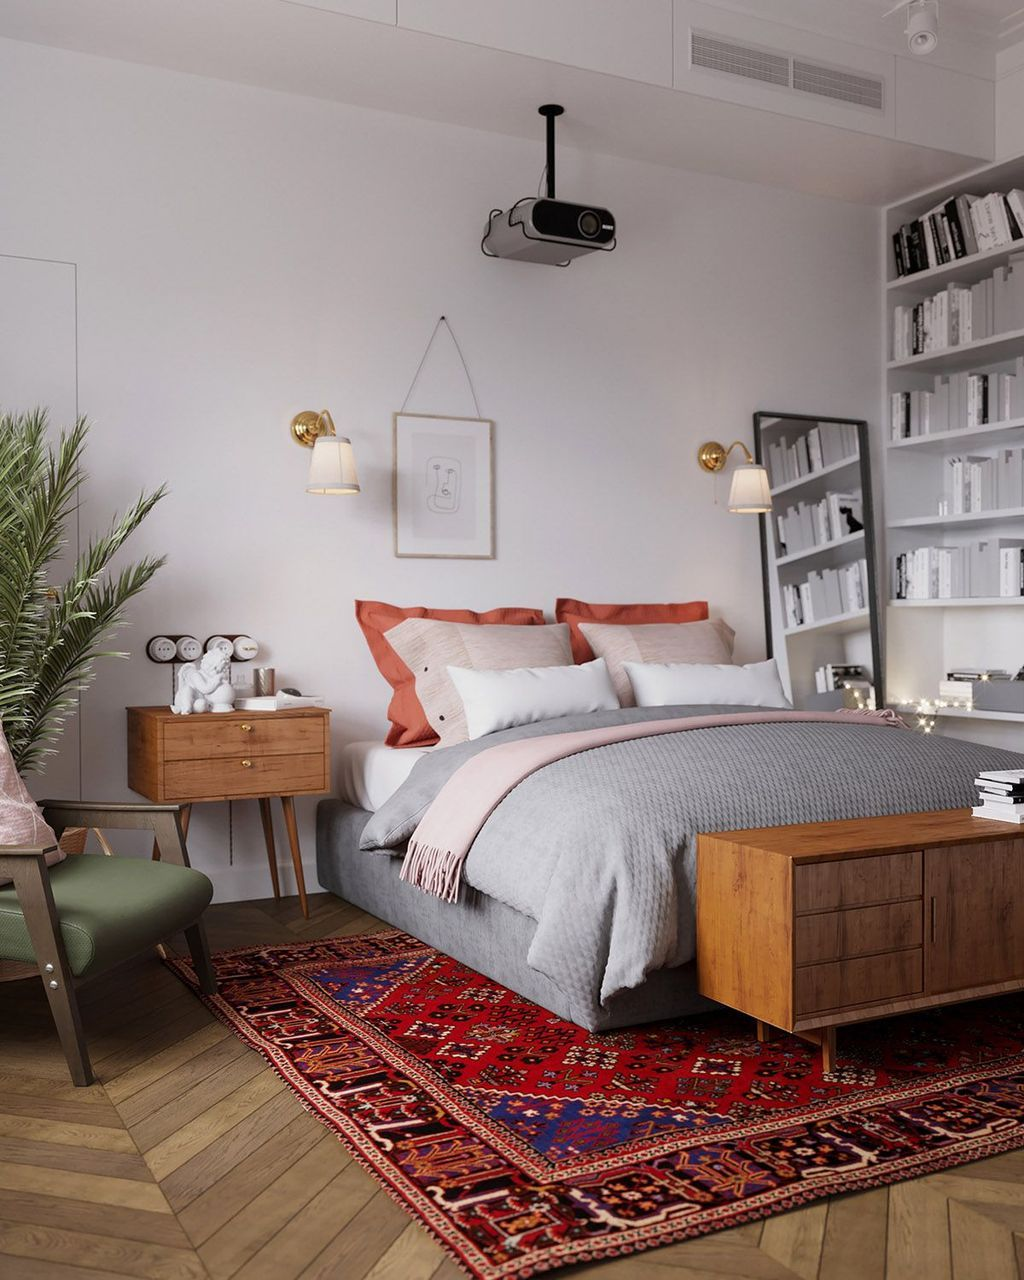 Scandinavian Home Design Looks So Charming With Eclectic: 41 Awesome Scandinavian Style Interior Apartment Ideas